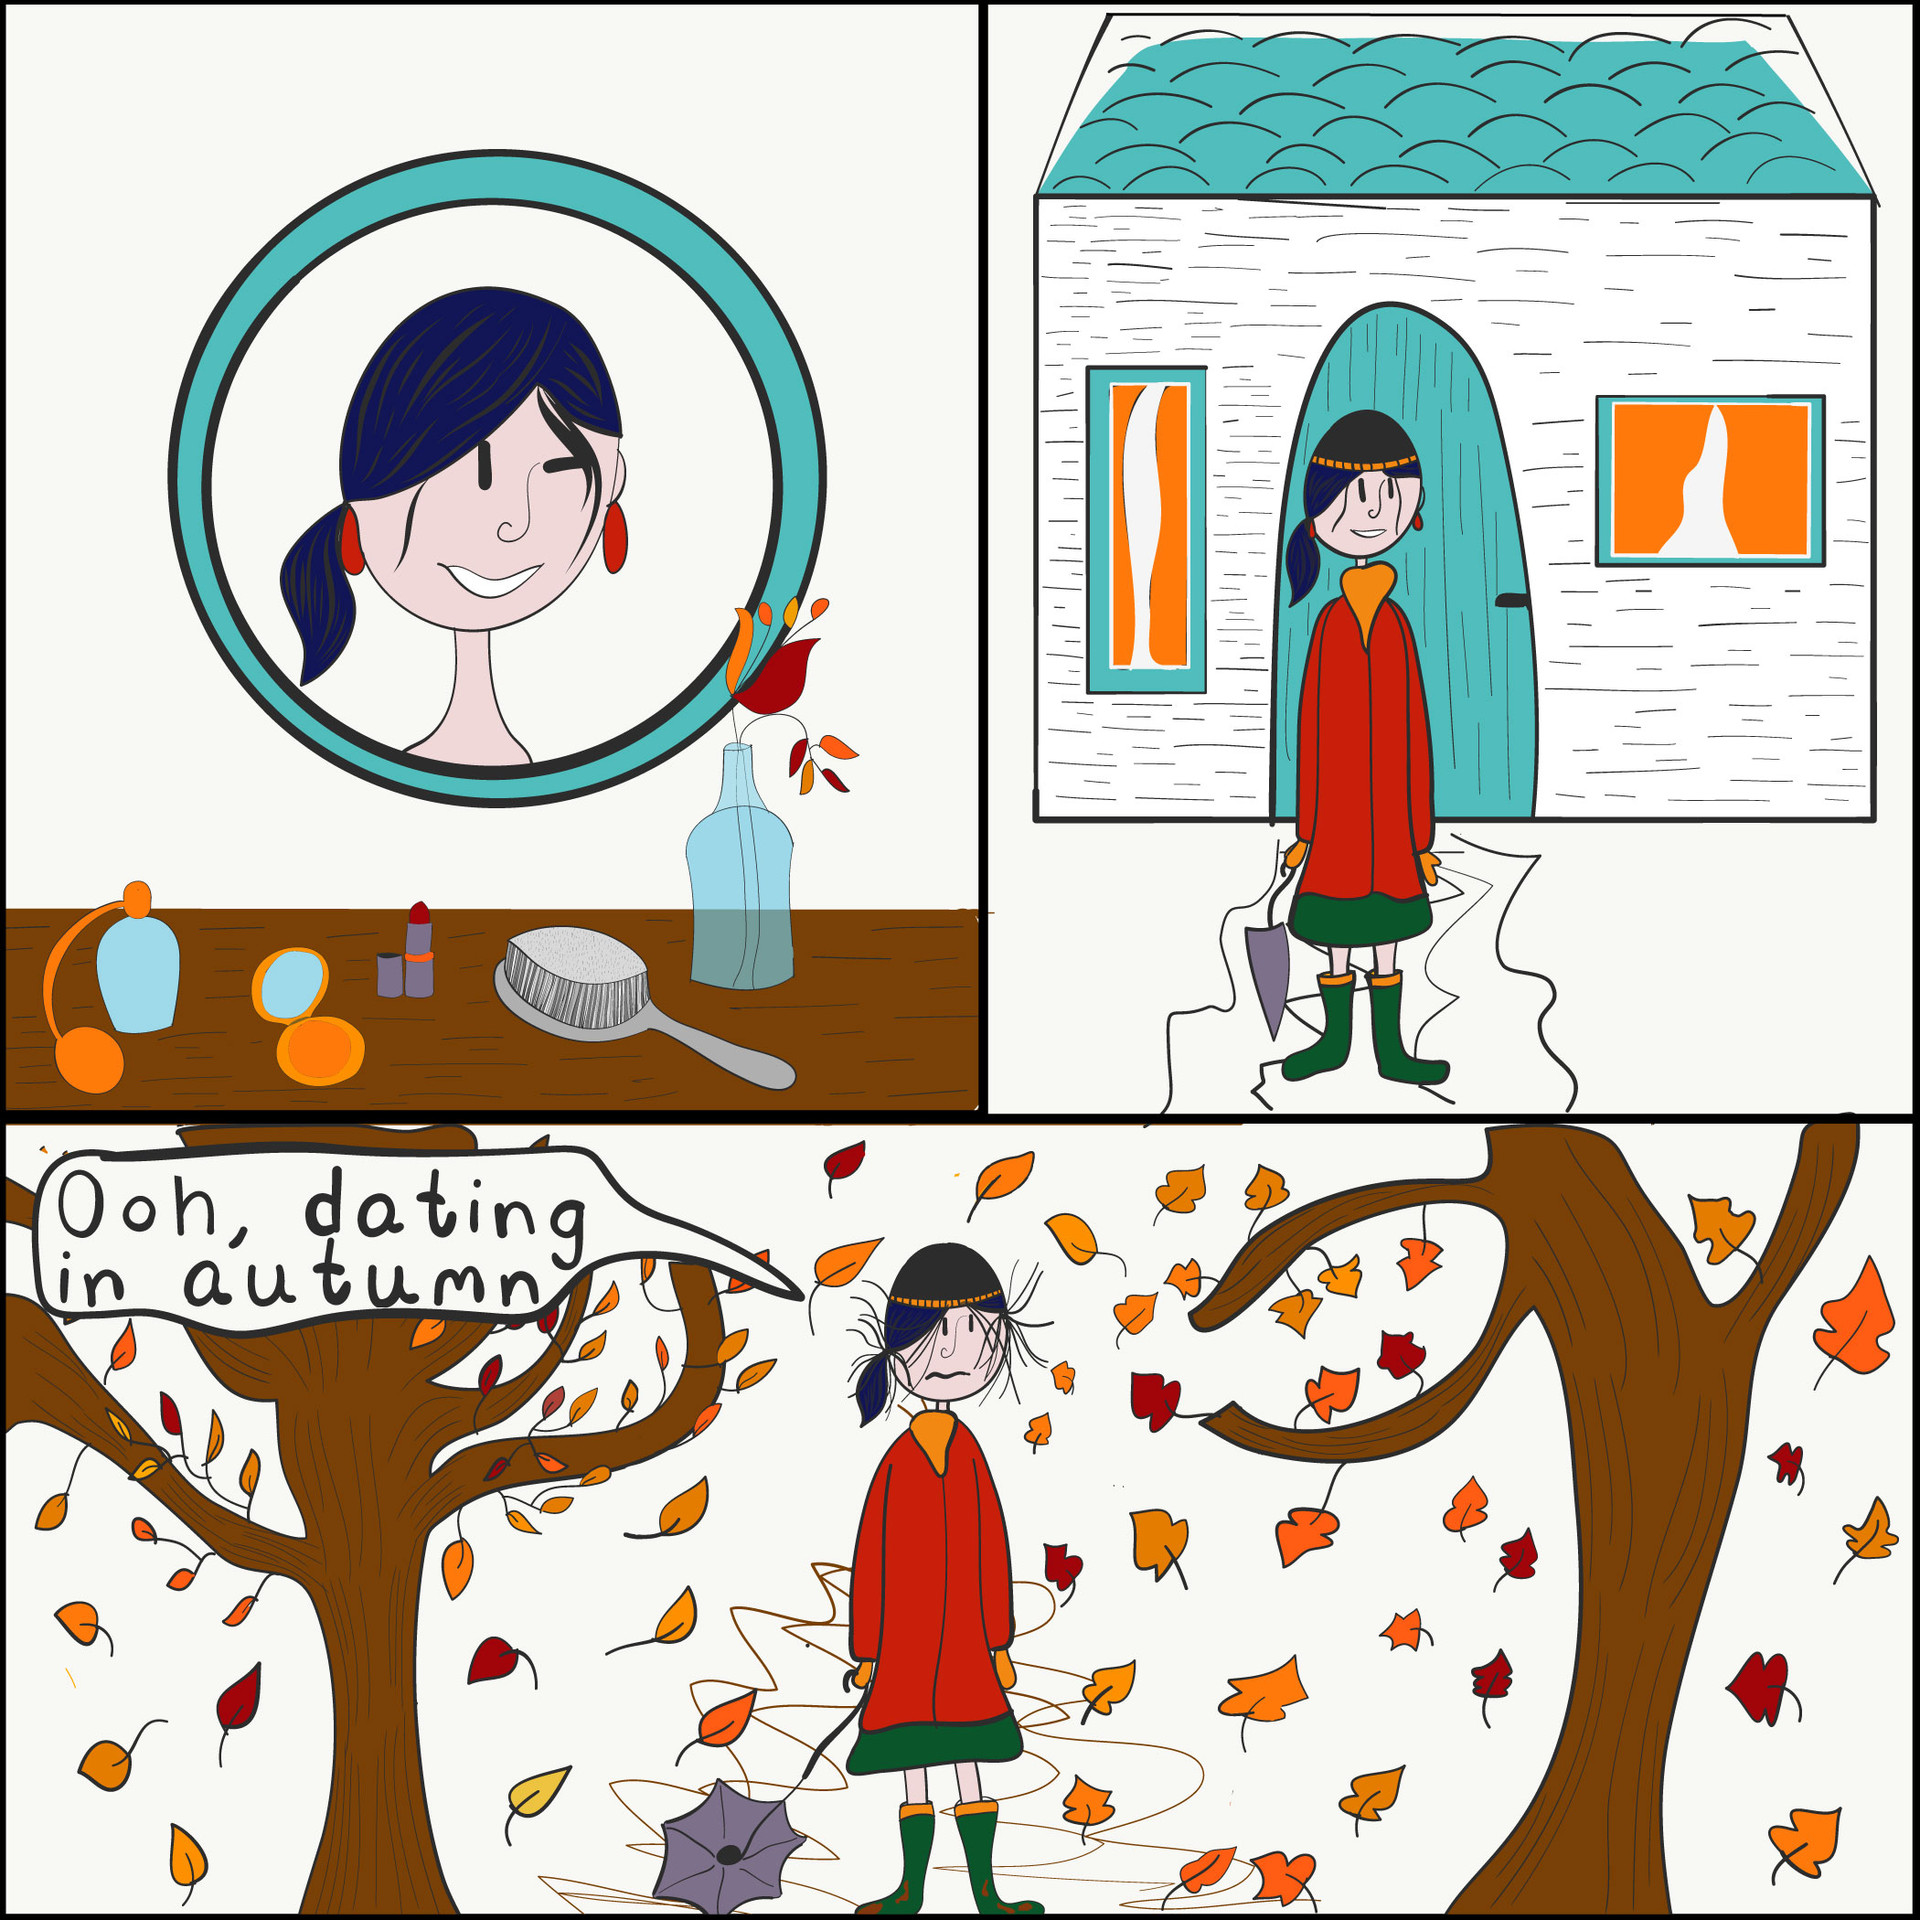 Ooh, dating in autumn